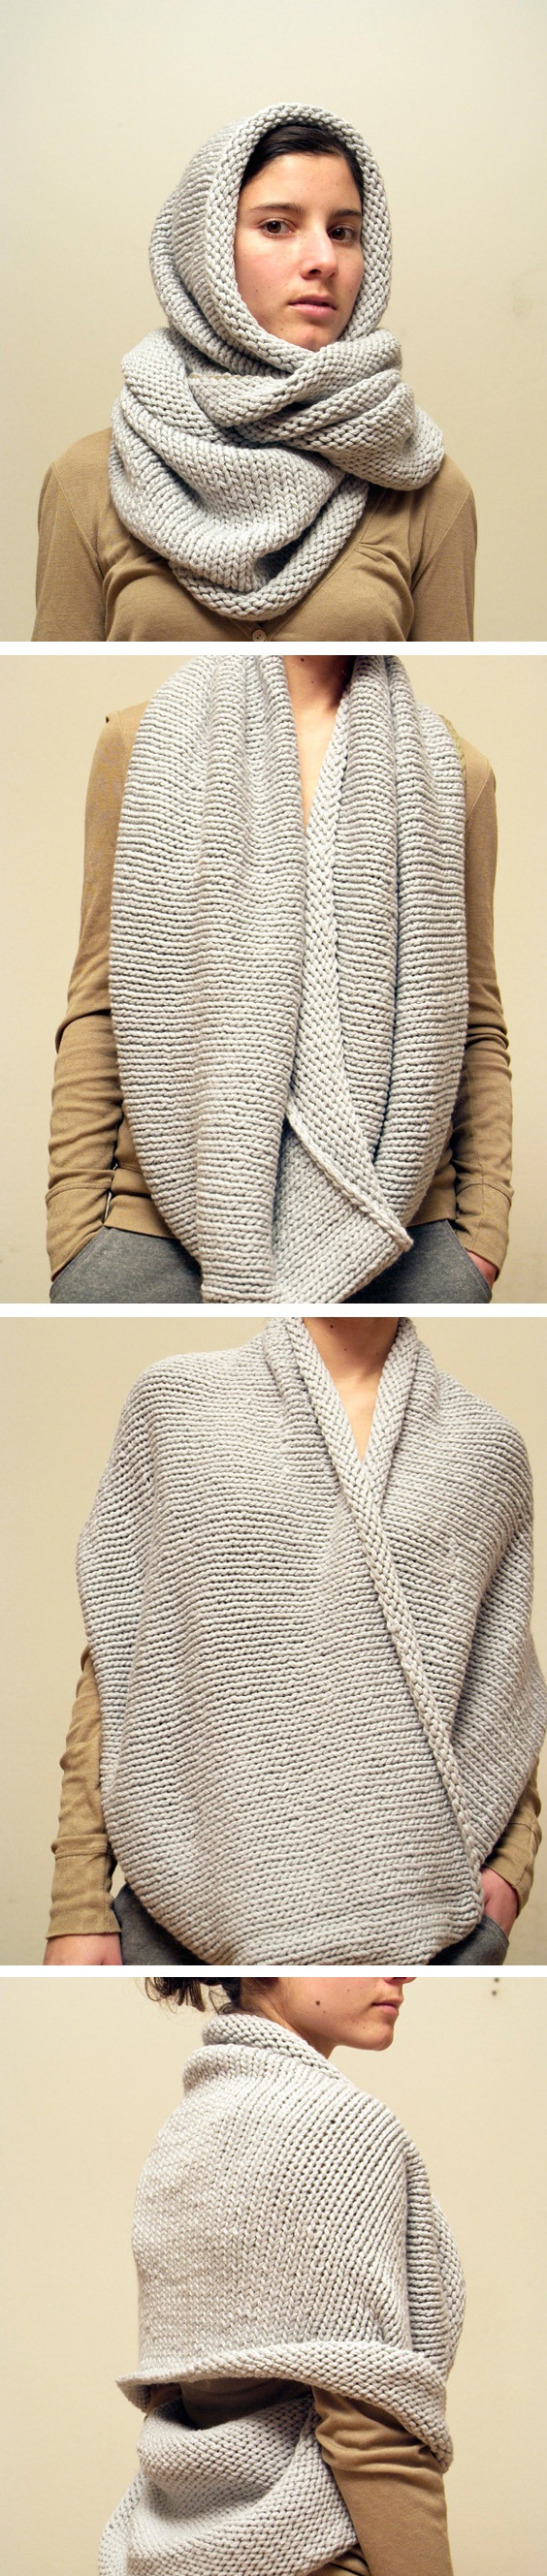 eternity scarf- I could totally whip this up fast, especially with yarn